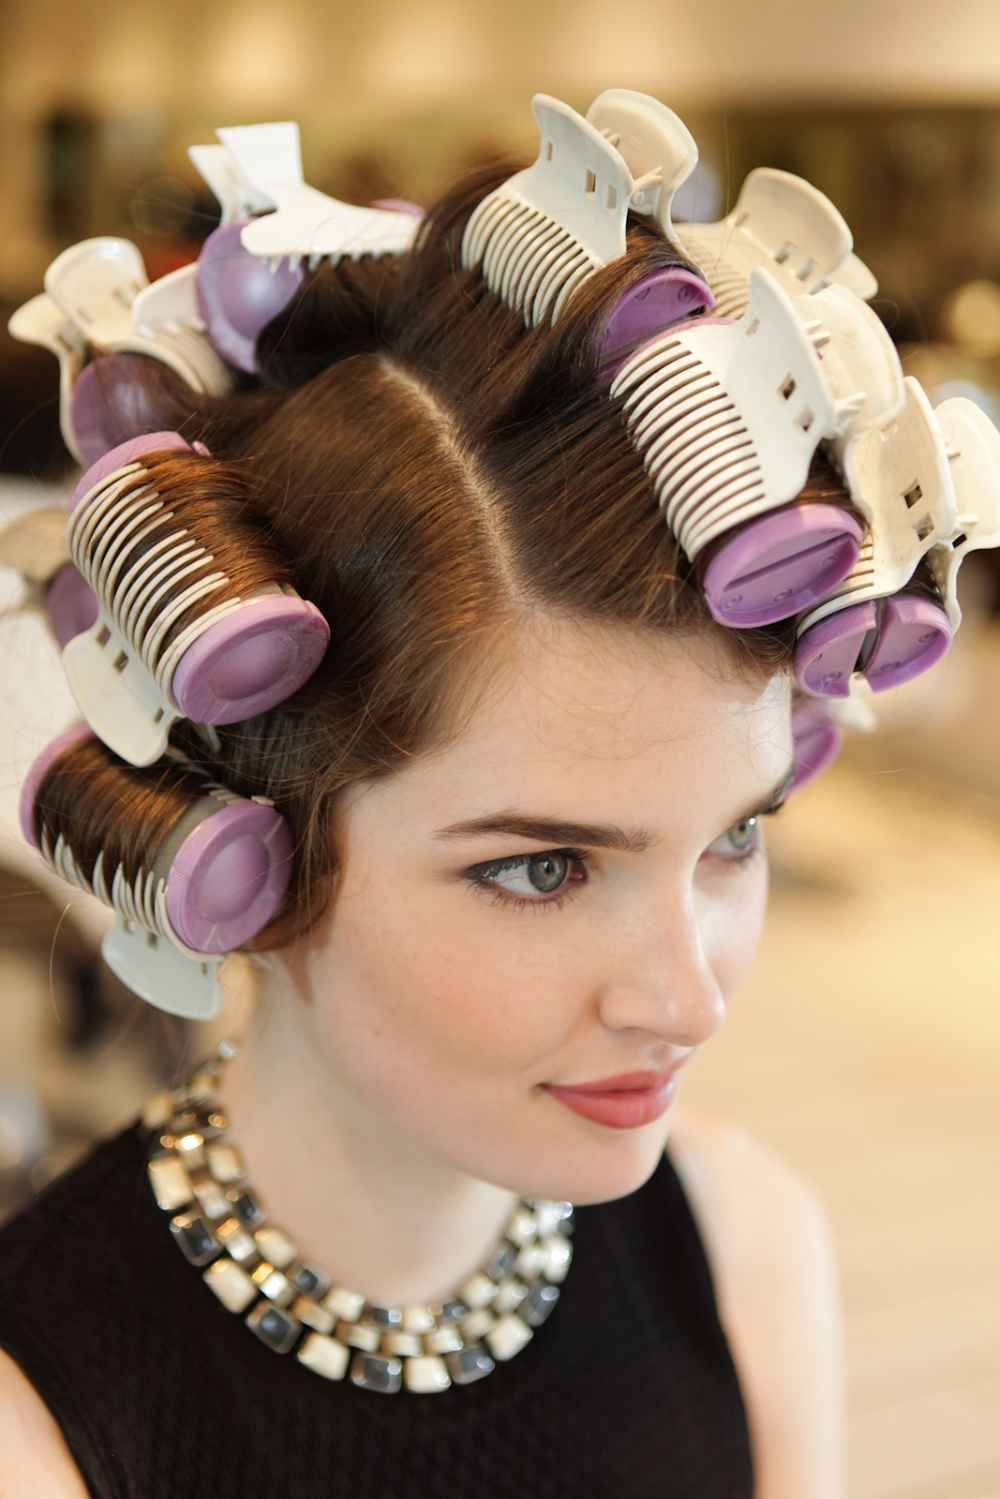 Styles Created With Hot Rollers Hot Rollers Hair Hot Roller Curls Hot Roller Styles